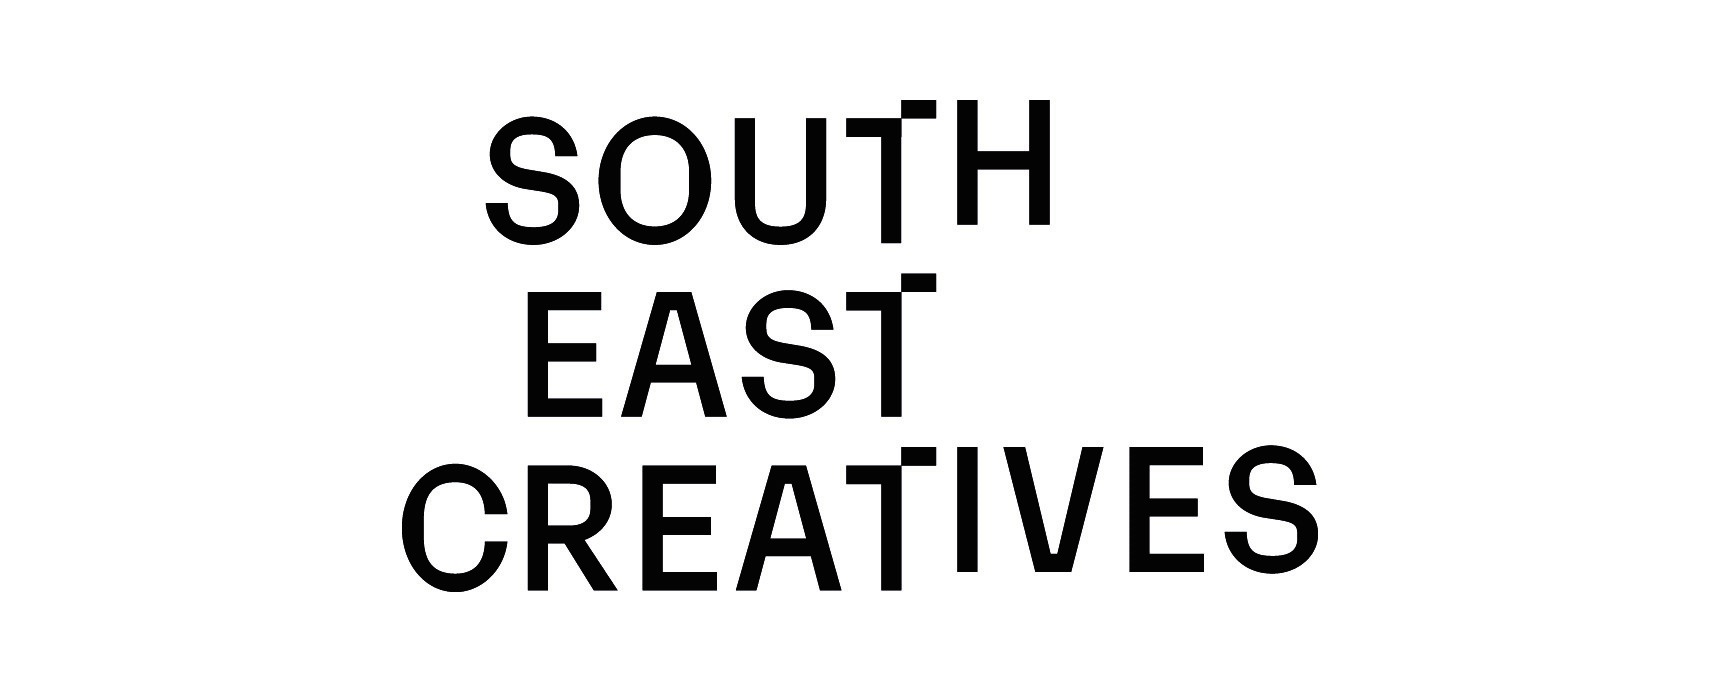 south east creatives